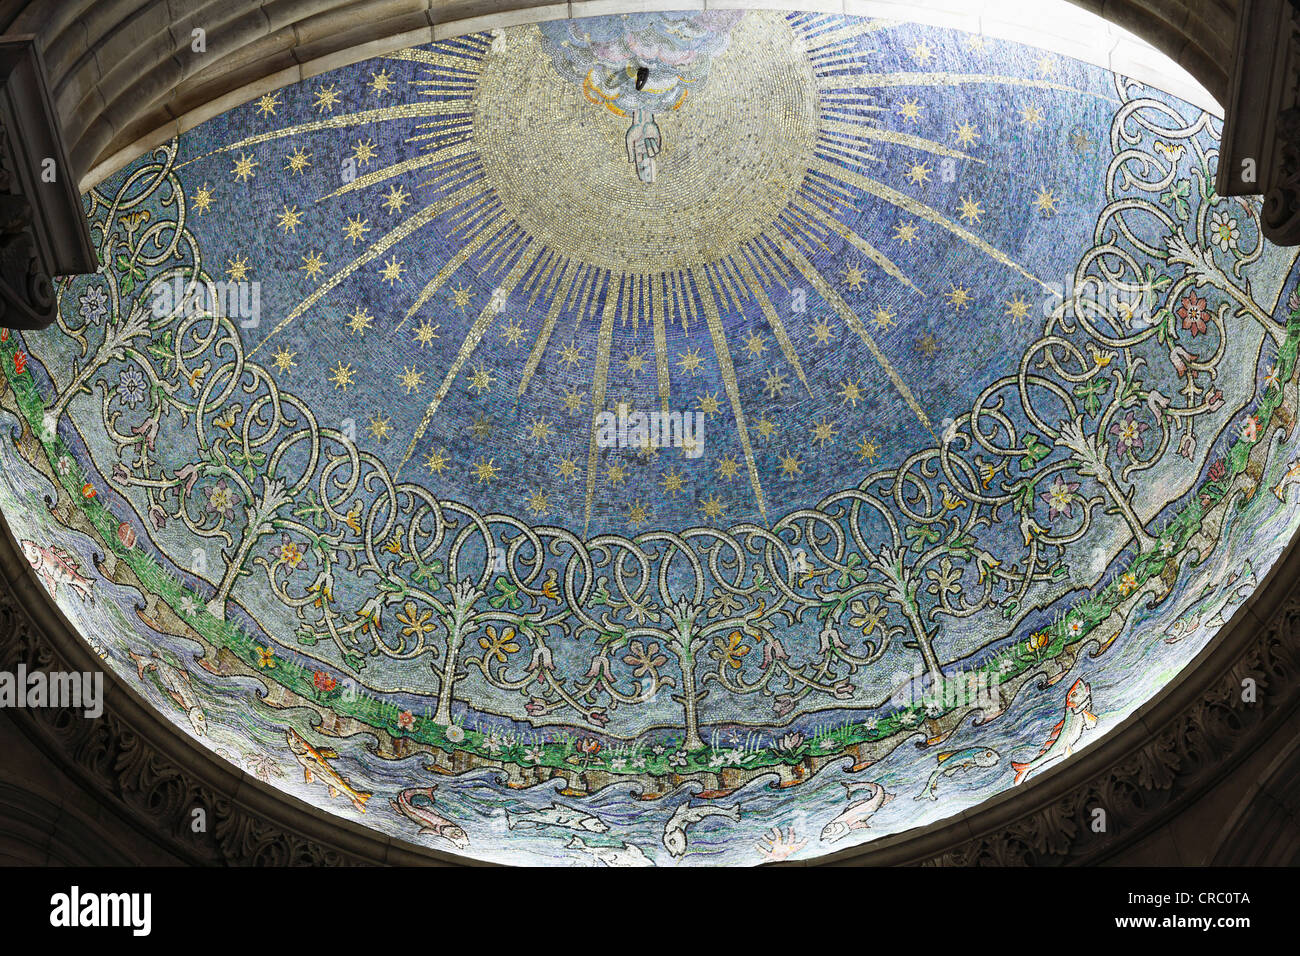 Mosaic The Creation in the baptistery, St. Anne's Cathedral, Belfast, Northern Ireland, Ireland, Great Britain, - Stock Image